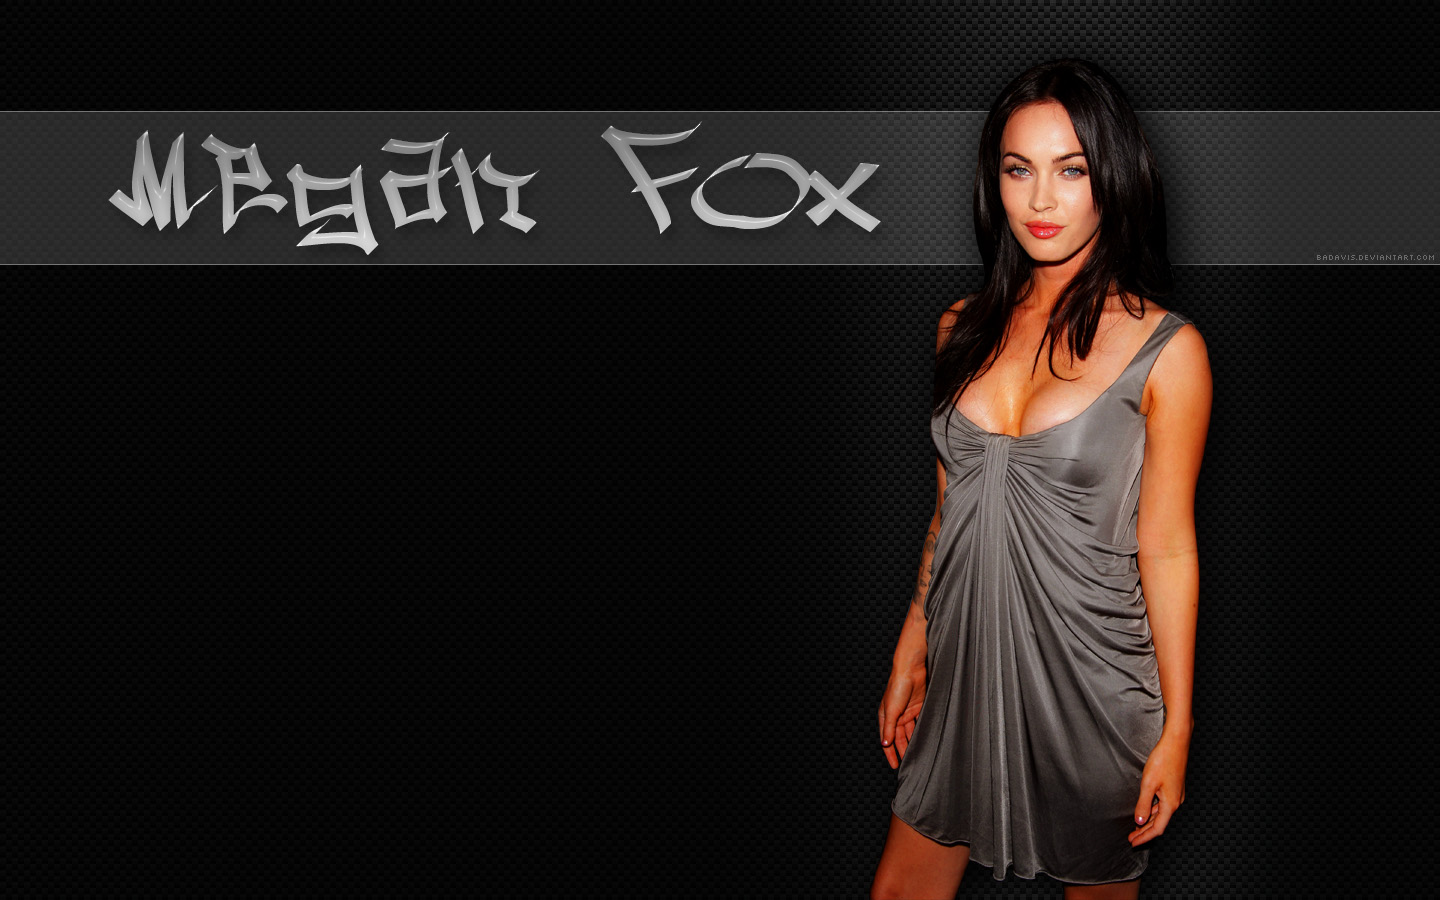 hollywood wallpedia: megan fox wallpaper widescreen hd